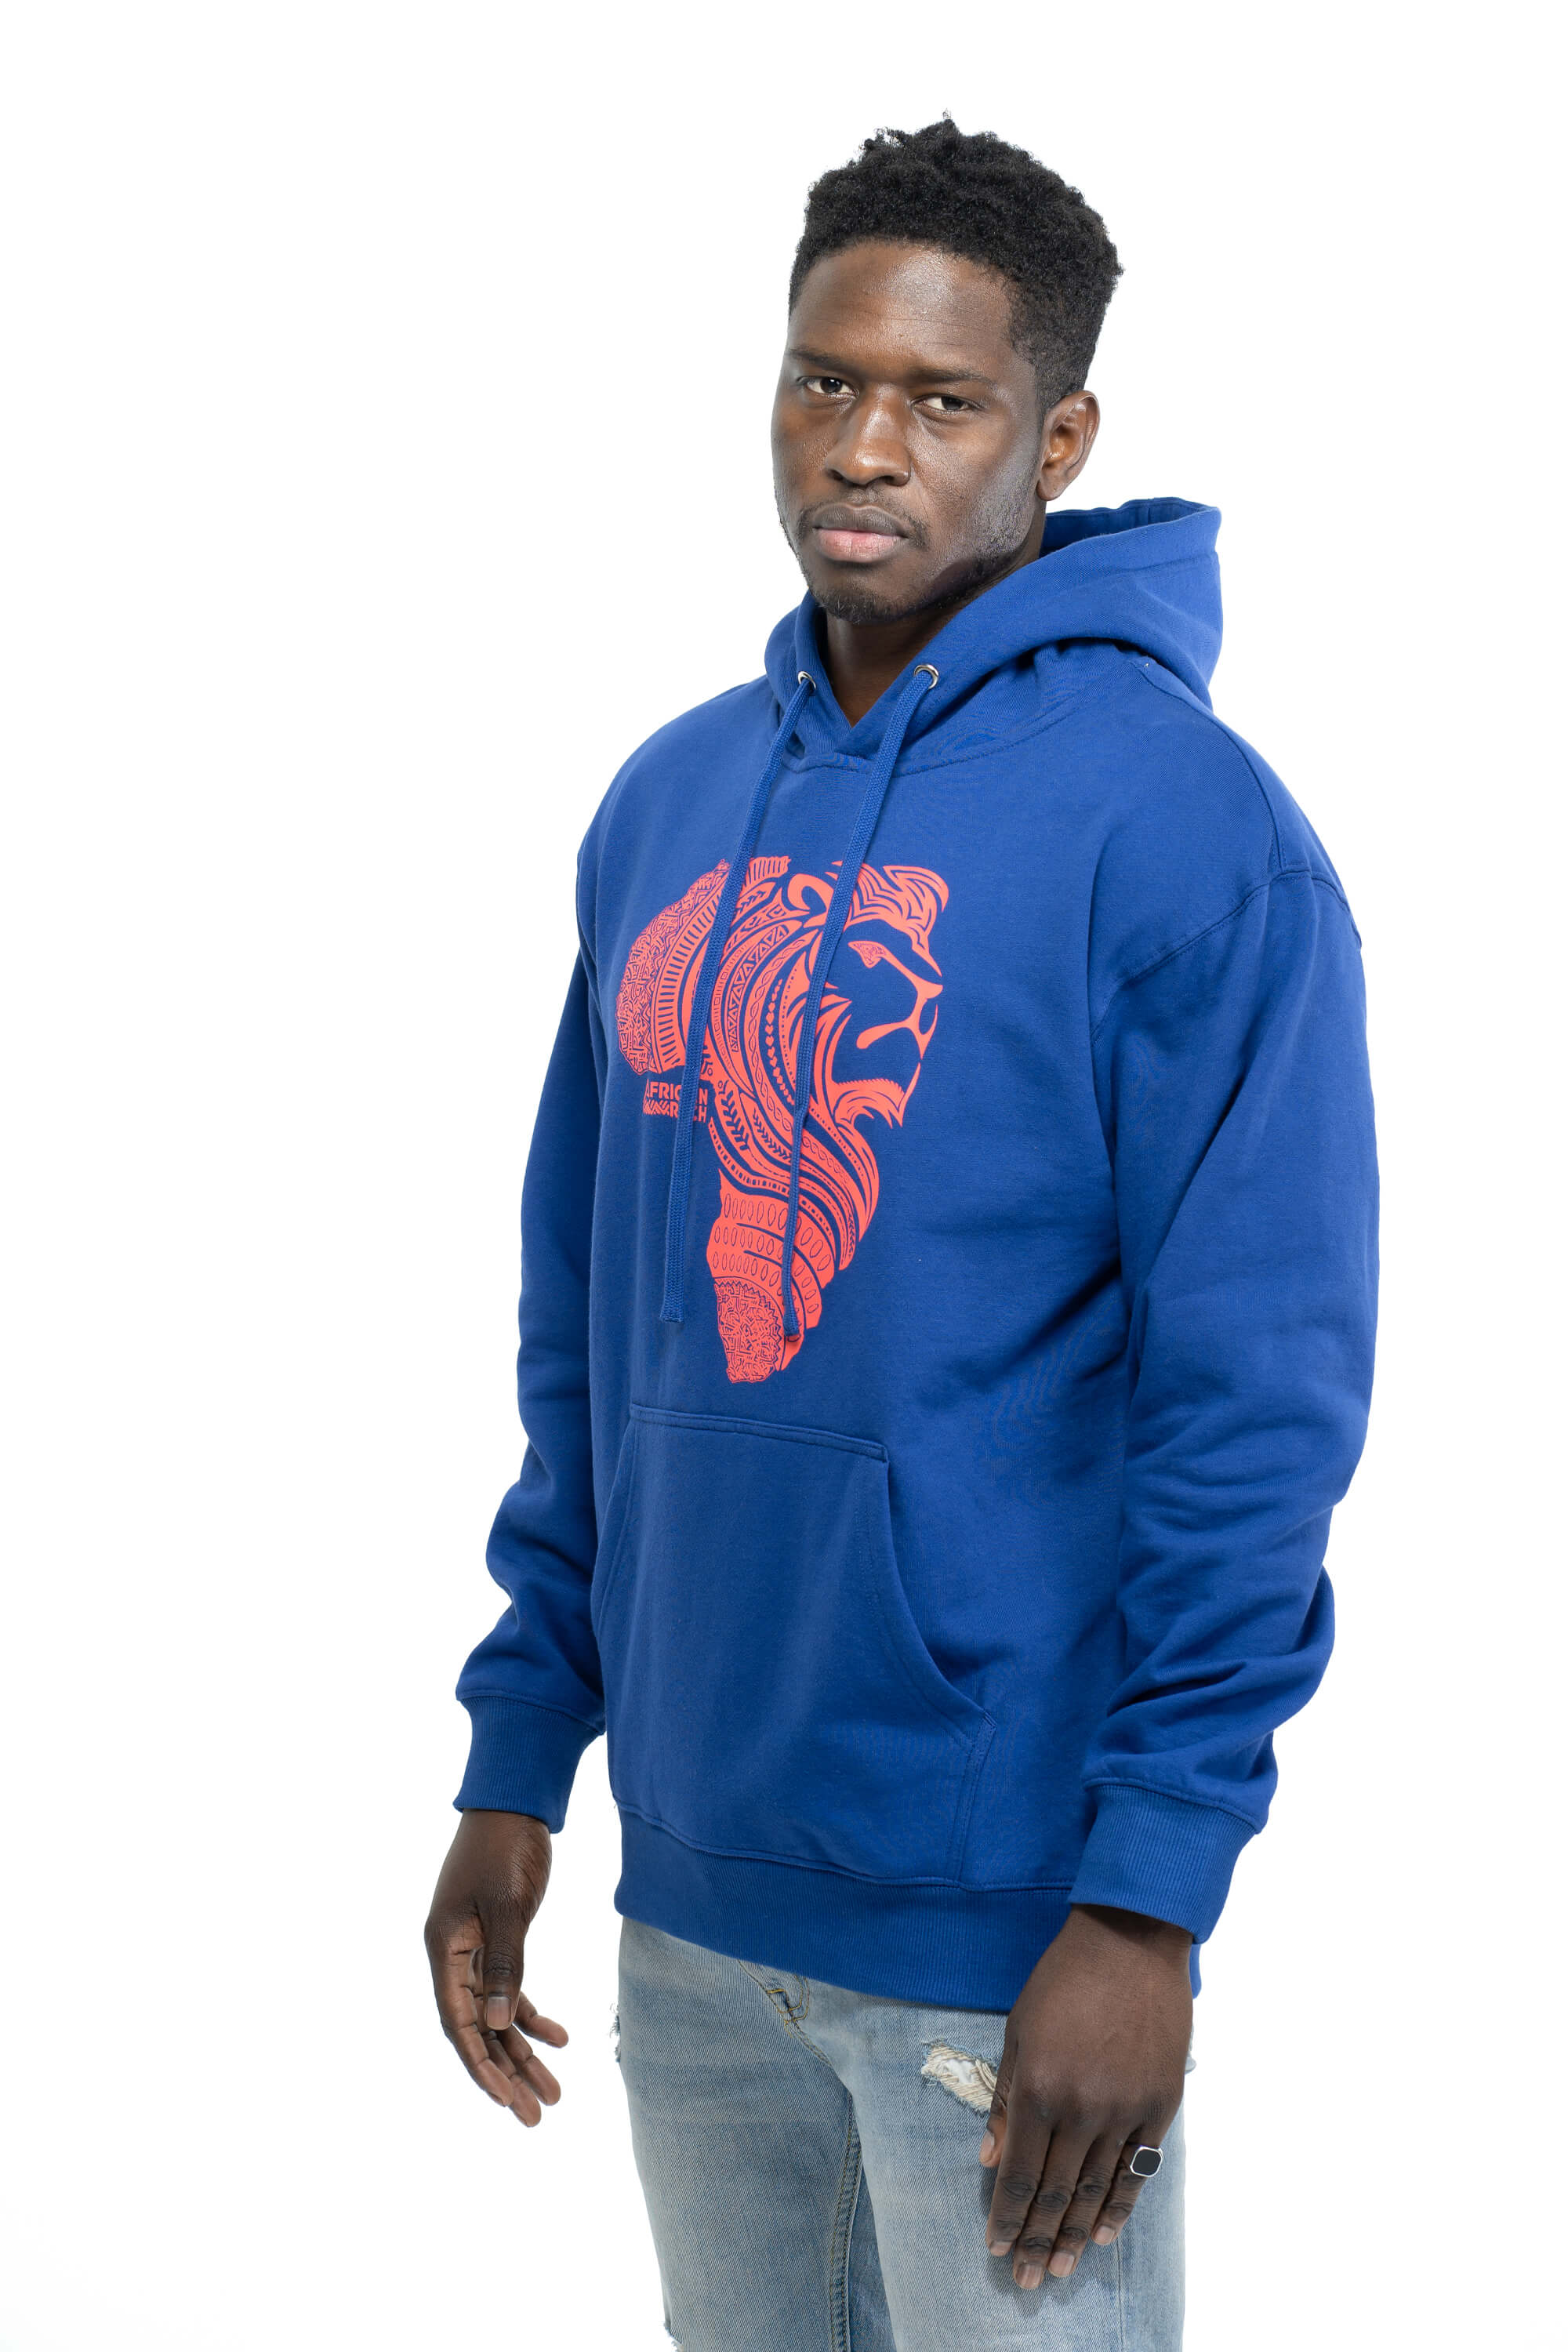 Royal Blue Hooded Sweatshirt